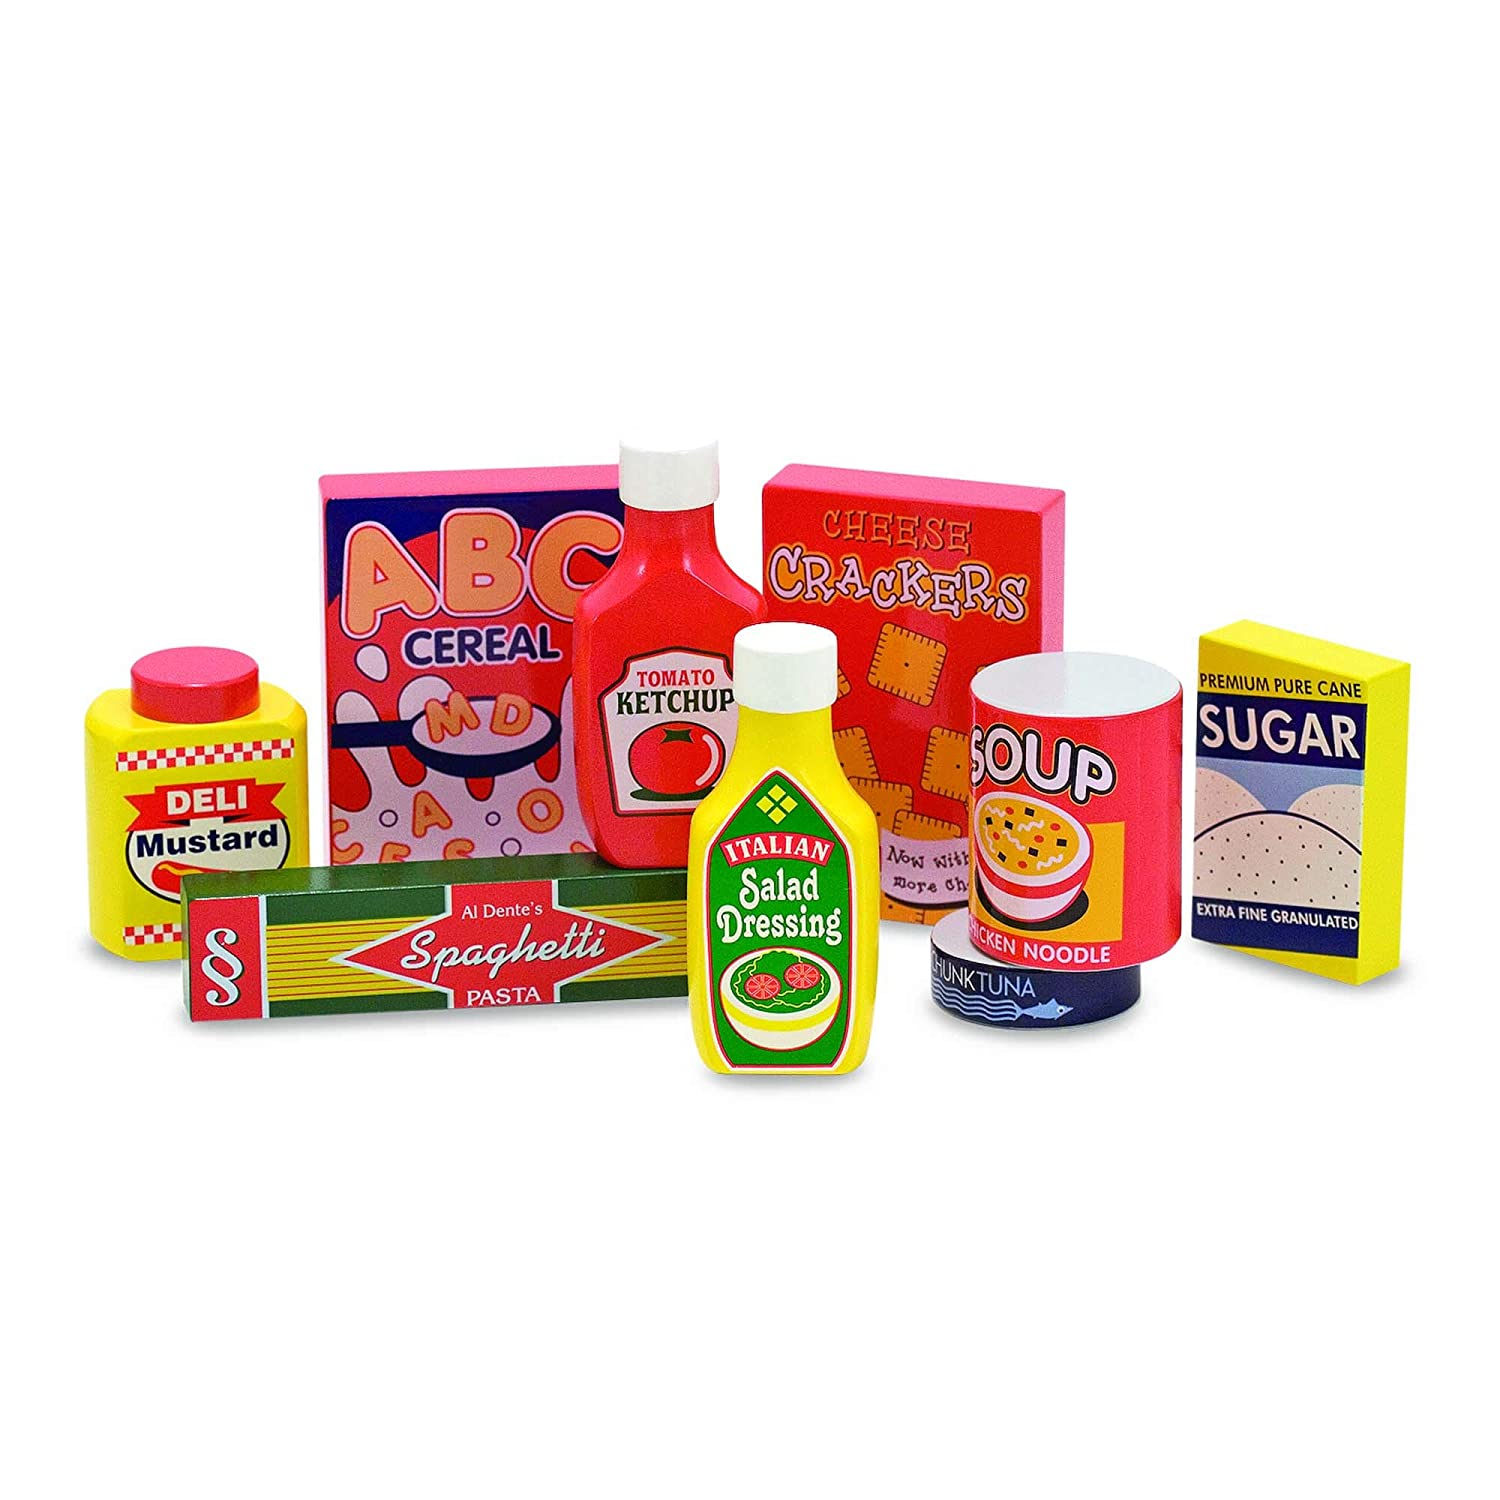 """Melissa & Doug Pantry Food Set, Wooden Play Food, Pretend Play, Hand-Painted Wood, Sturdy Construction, 9 Pieces, 13.1"""" H x 10.65"""" W x 2.45"""" L"""